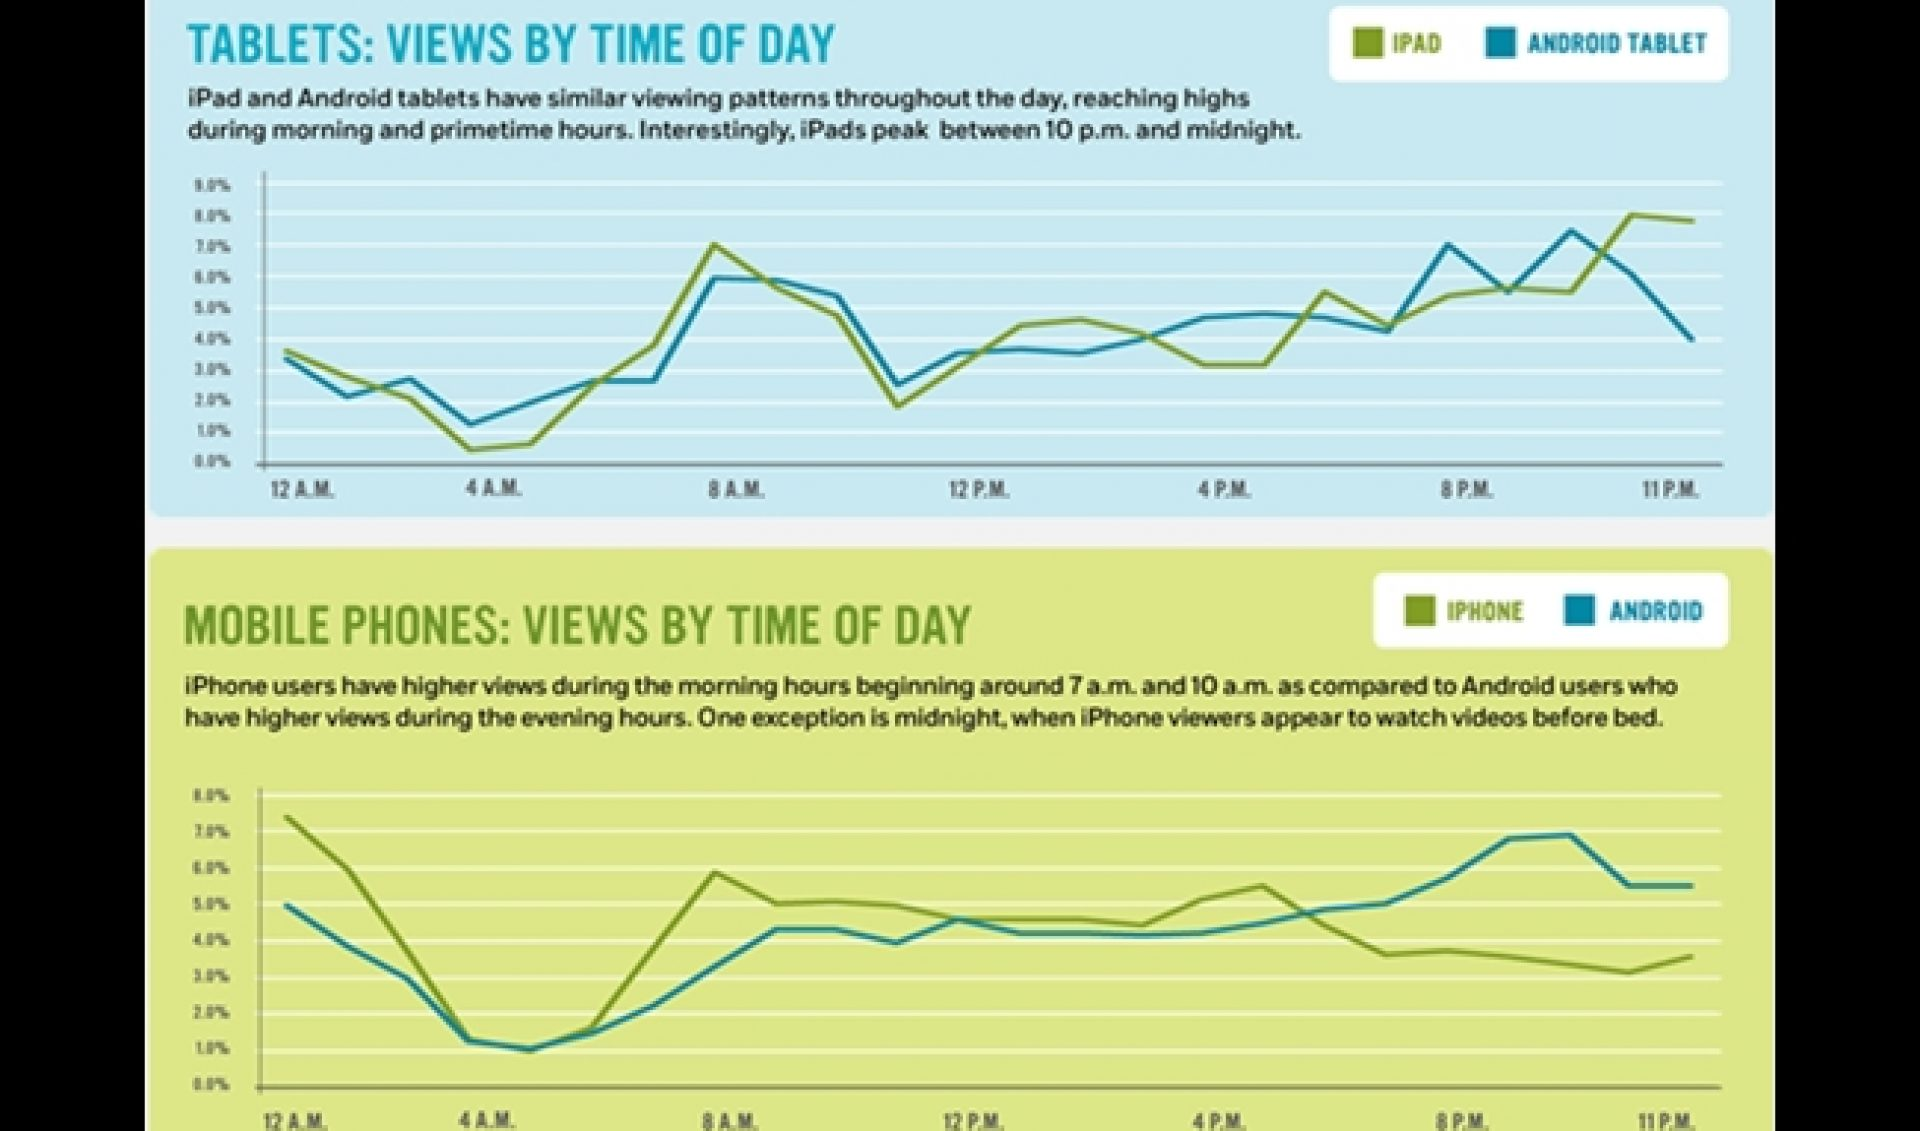 25.7% of Tablet Pre-Roll Ad Views Come During Primetime